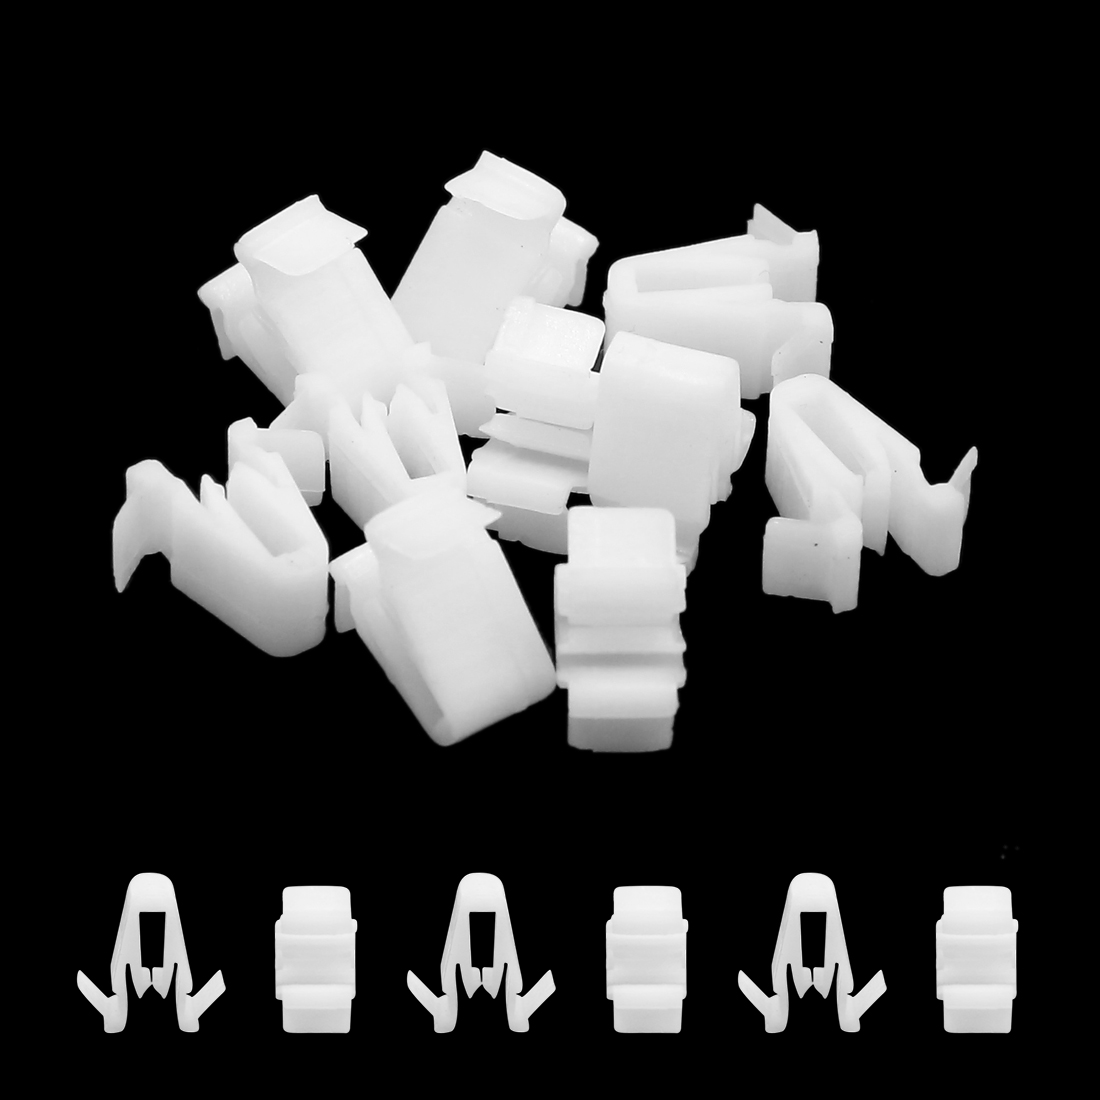 10Pcs White Plastic Rivets Dashboard Panel Retainer Clips Fastener for Car